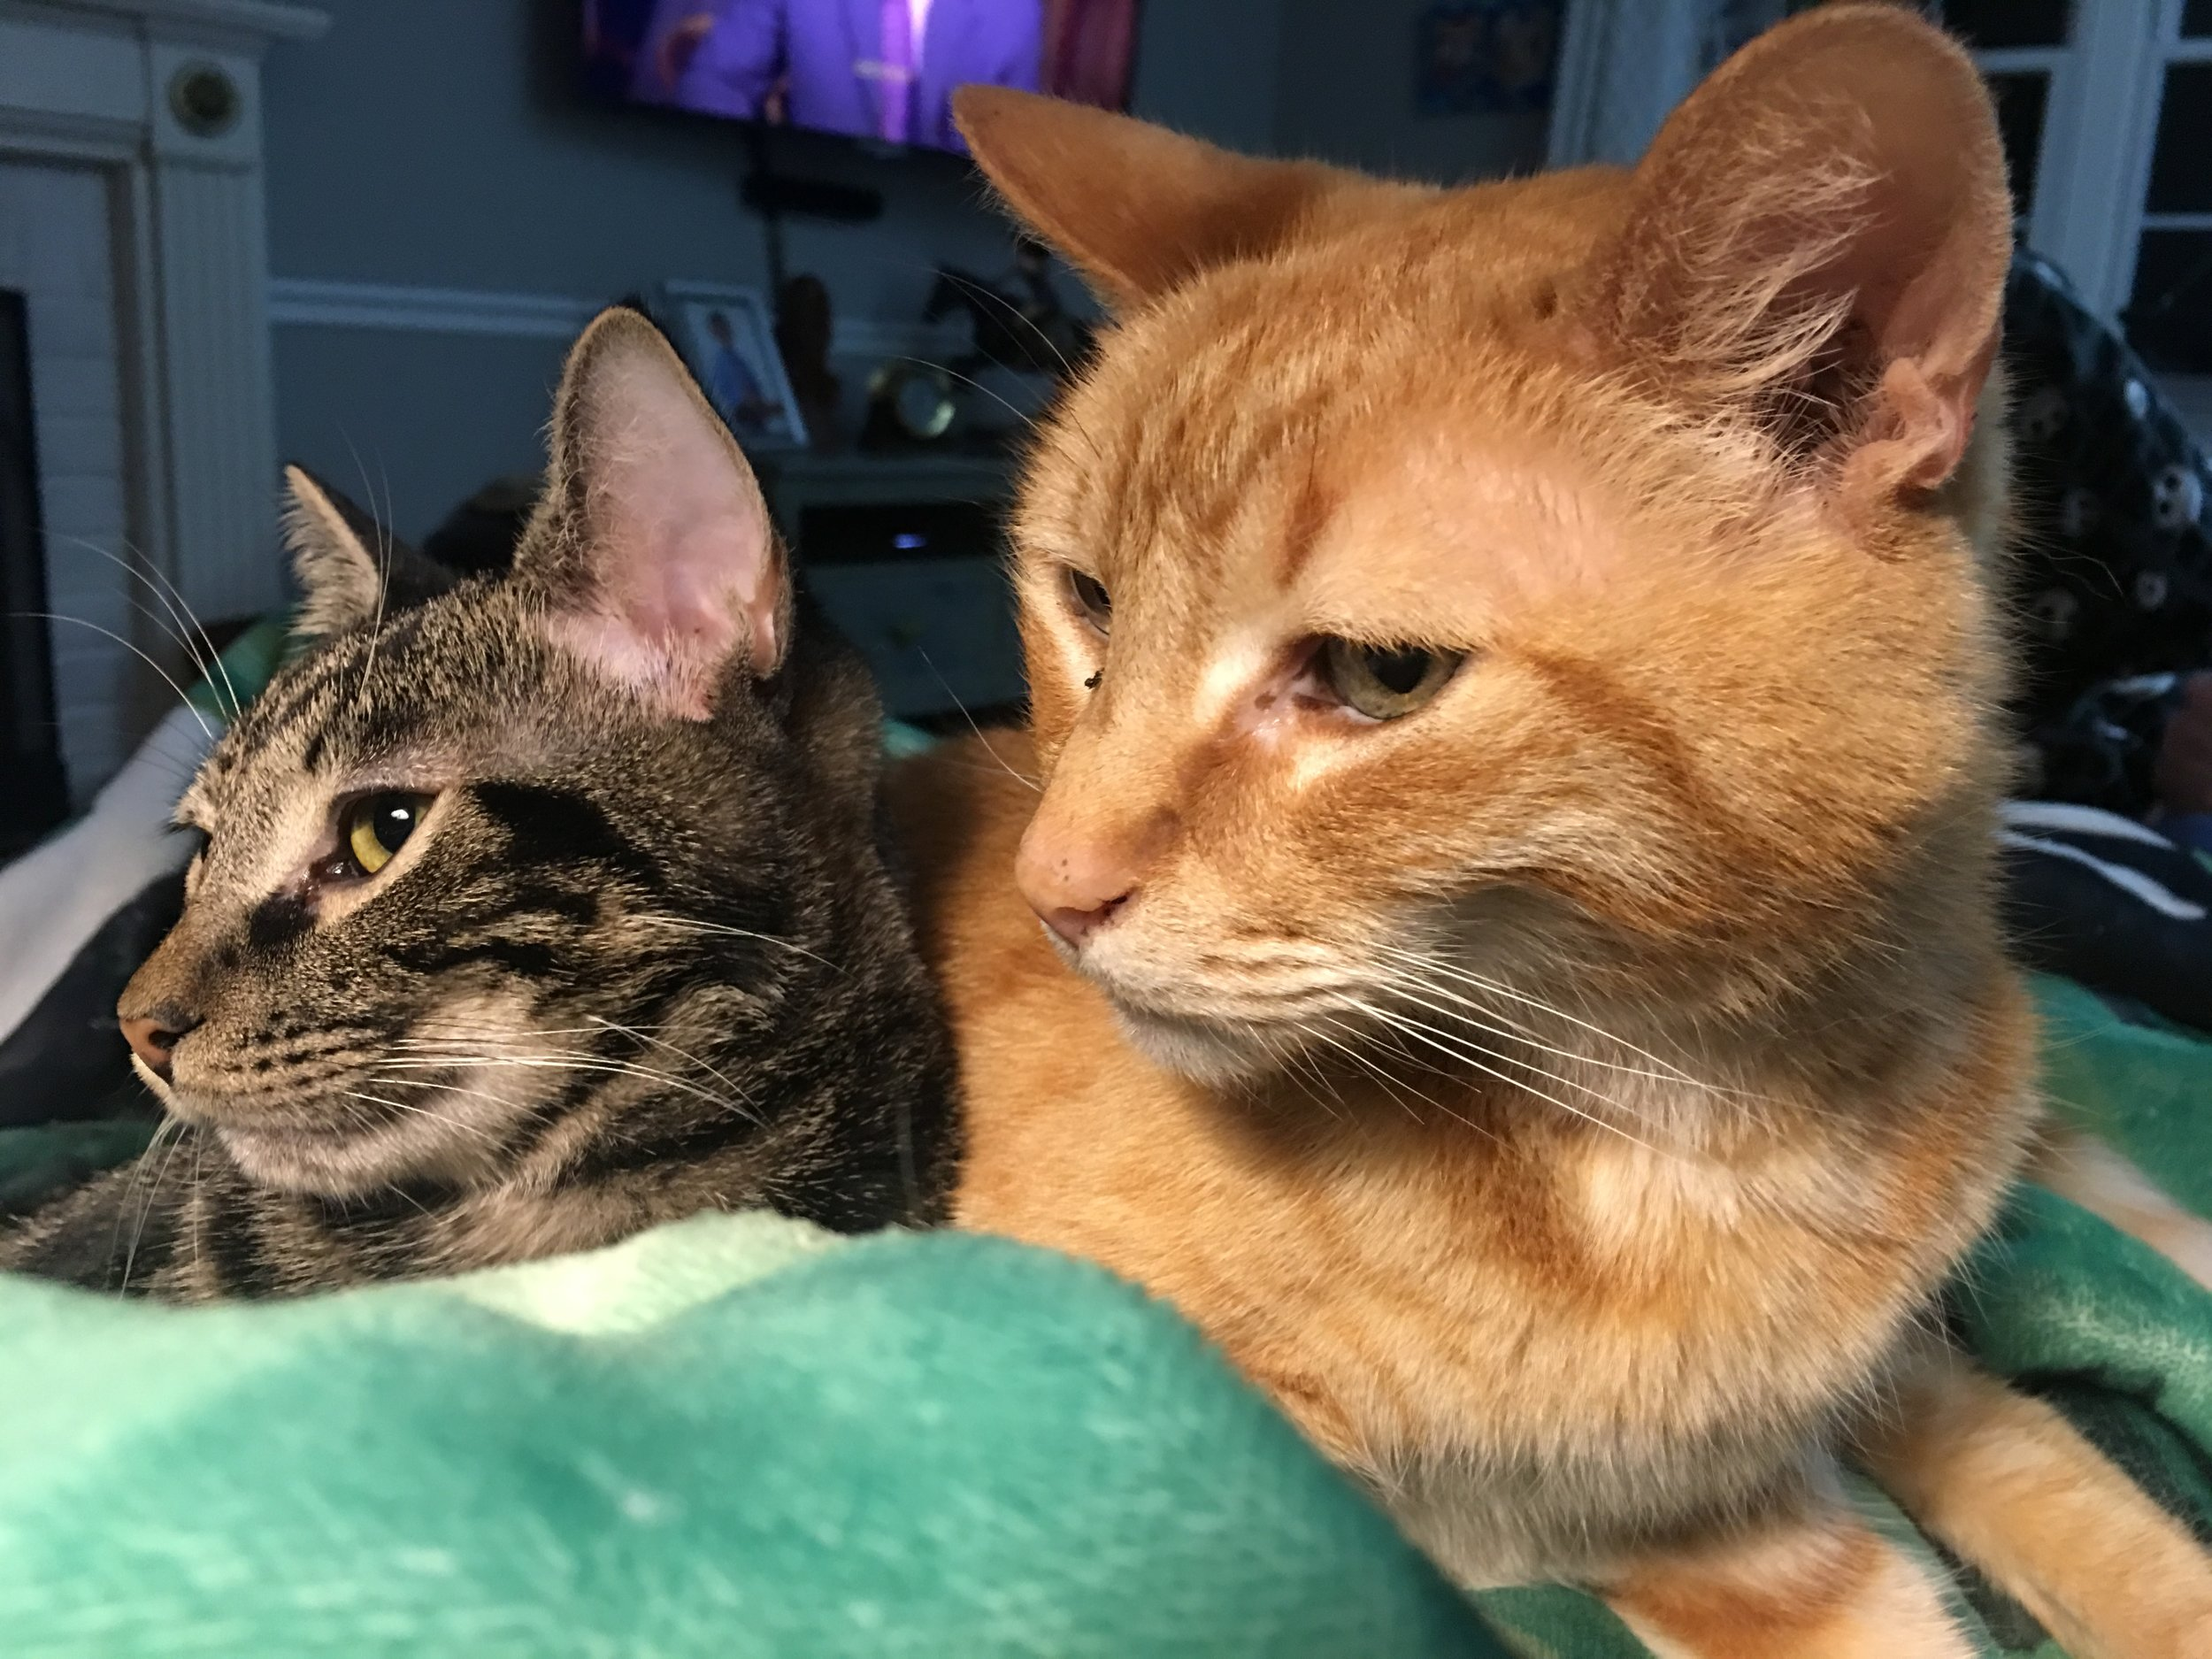 These two say that they appreciate the lack of stink in their home. They also say that they work hard at making stink, on a regular basis.